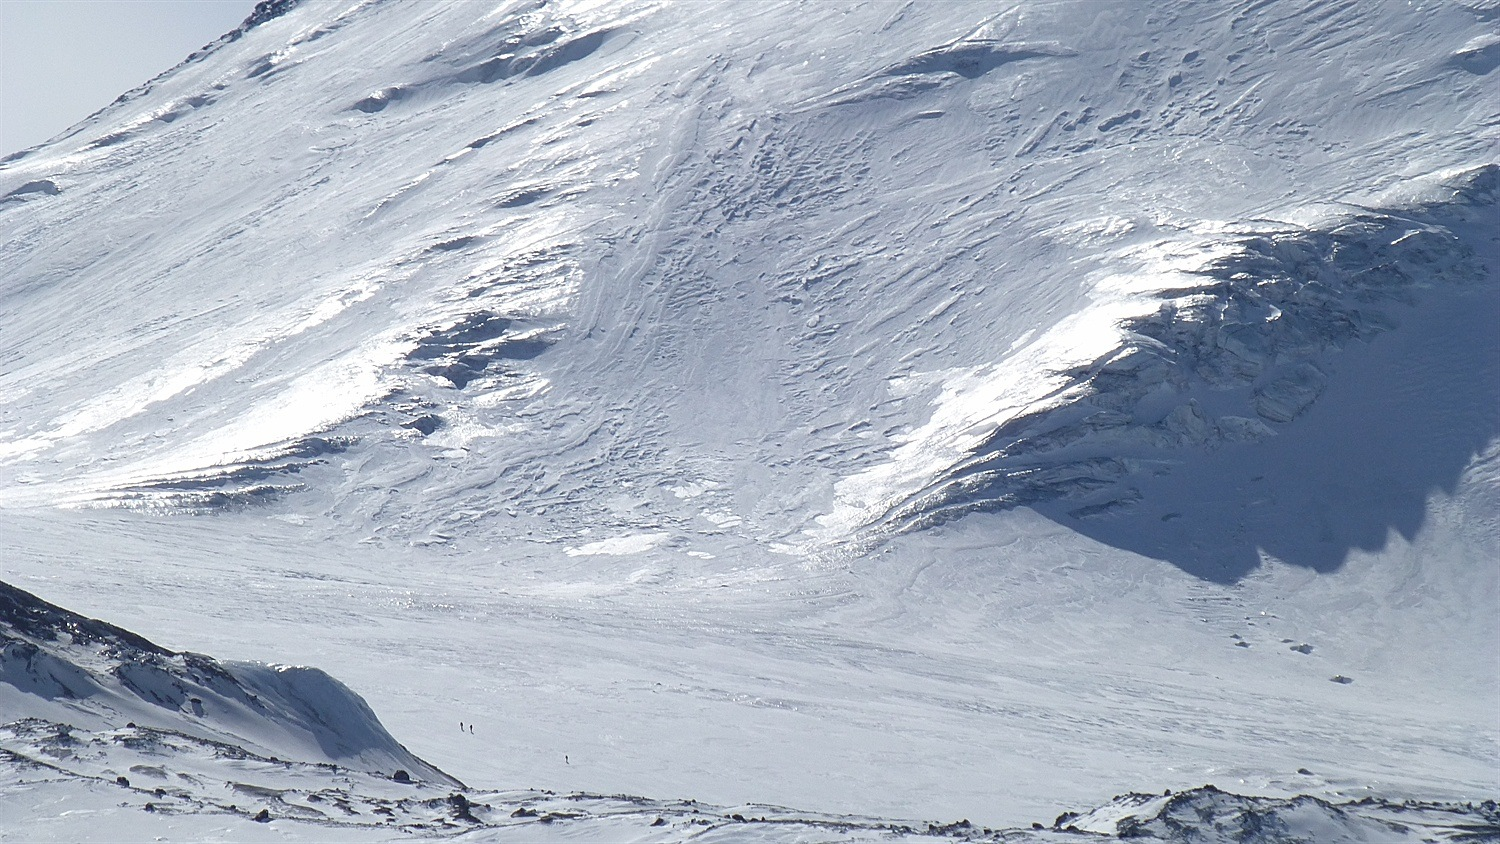 Spot the 3 little people on the glacier and see how icy the slope of Kamen is.